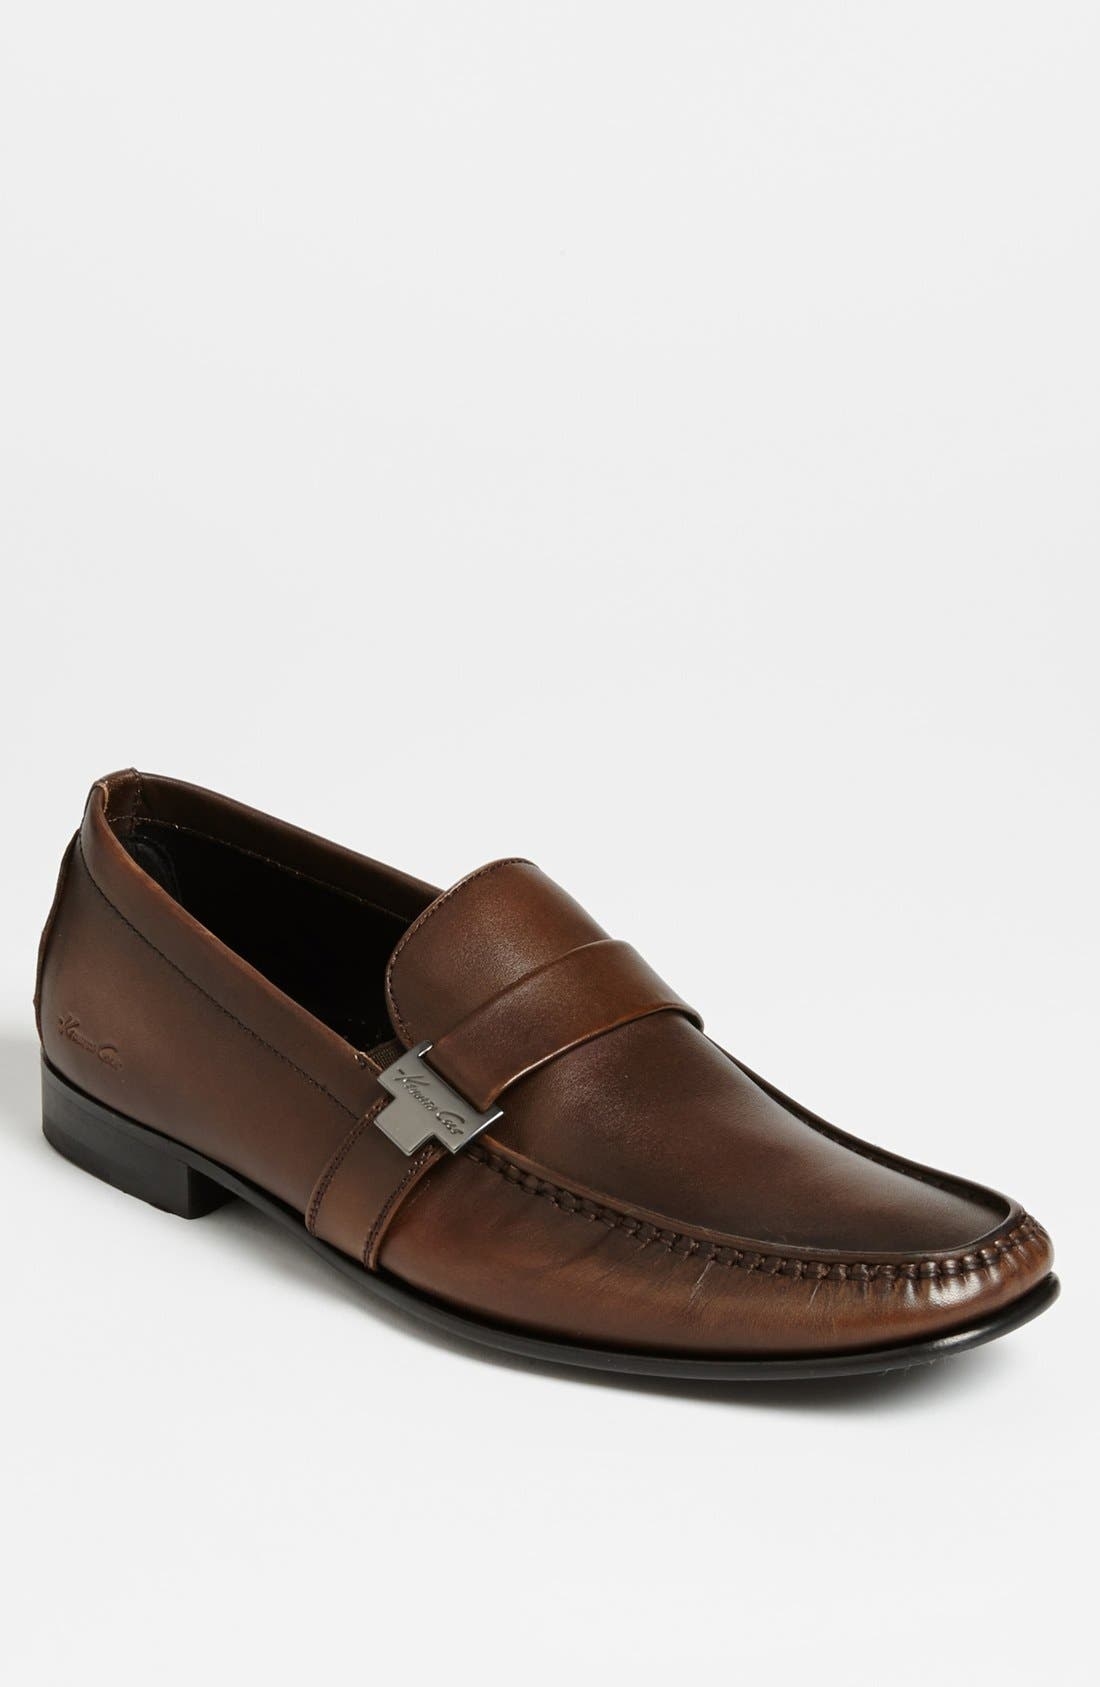 Alternate Image 1 Selected - Kenneth Cole New York 'Florence' Loafer